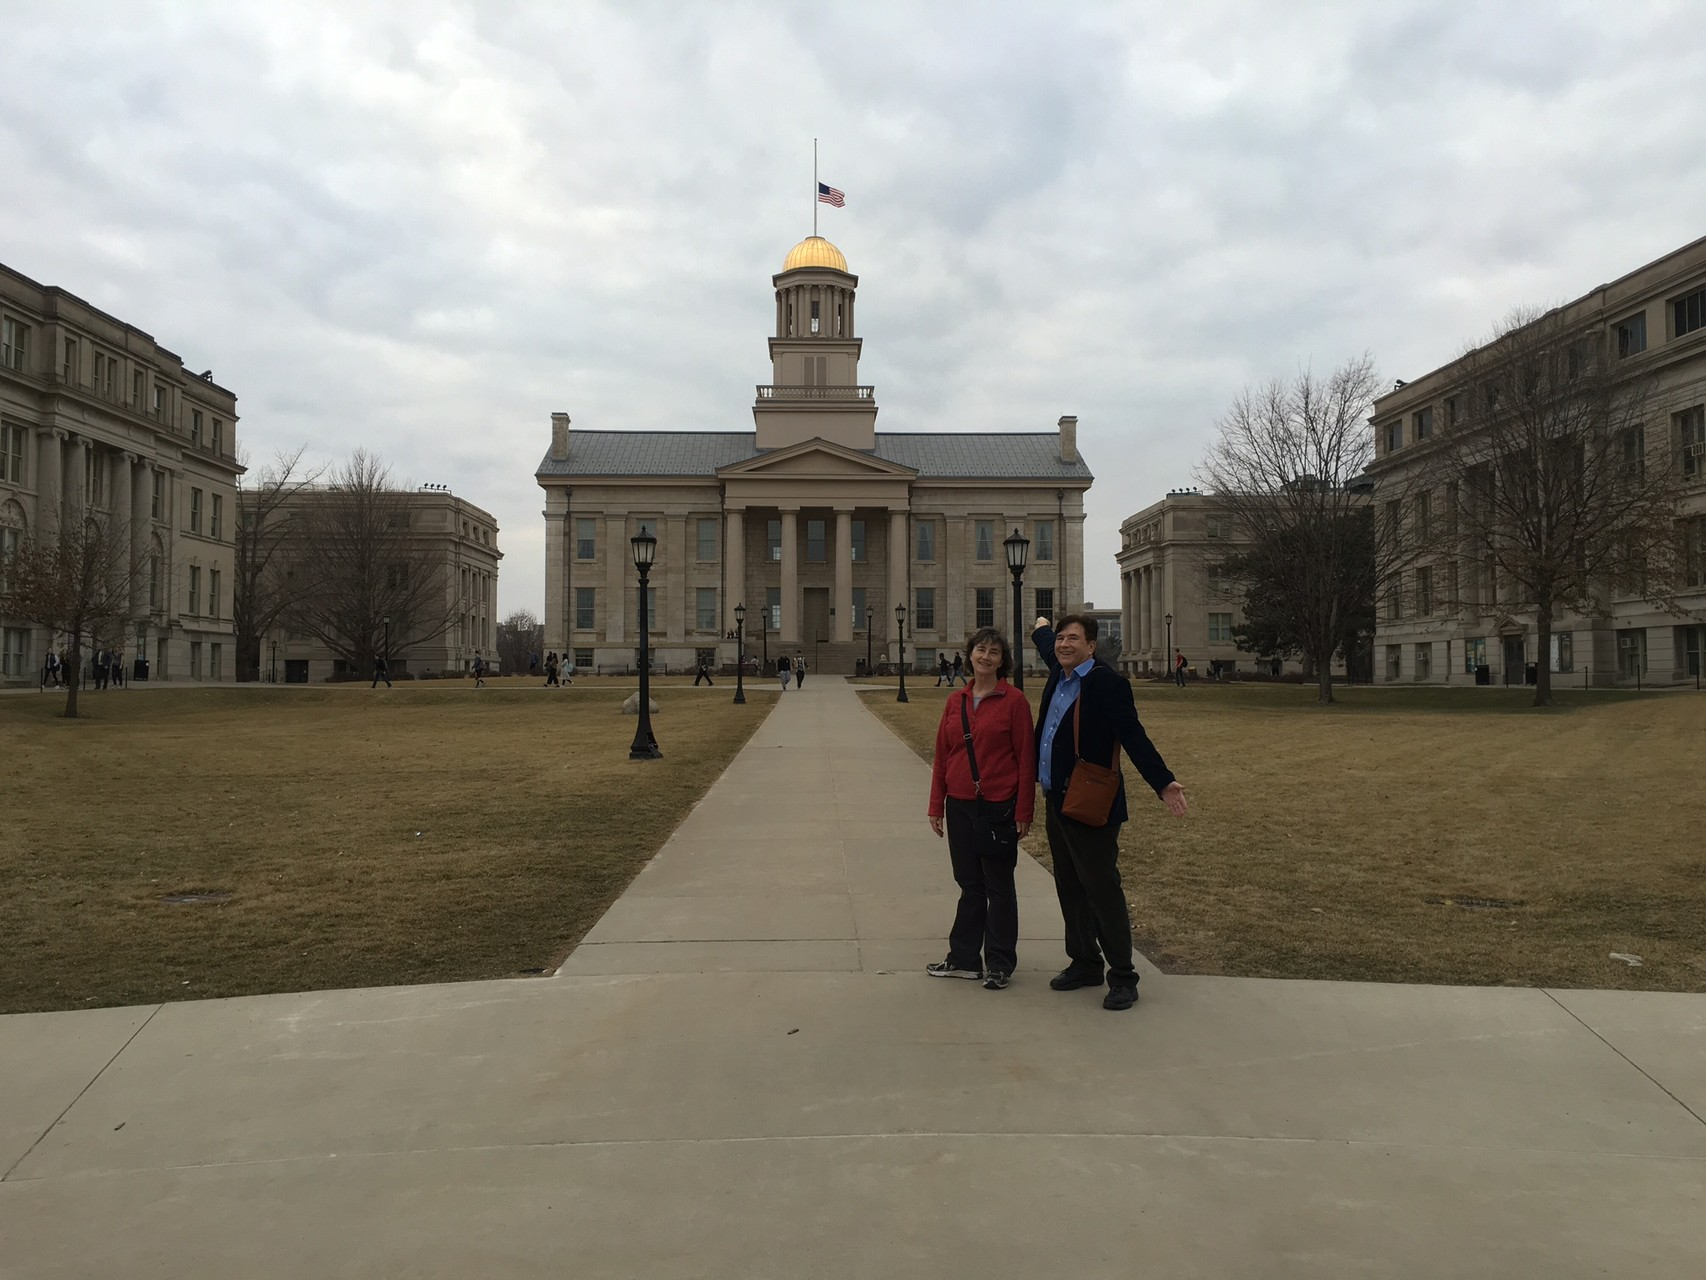 Ann & John at the old capital in Iowa City